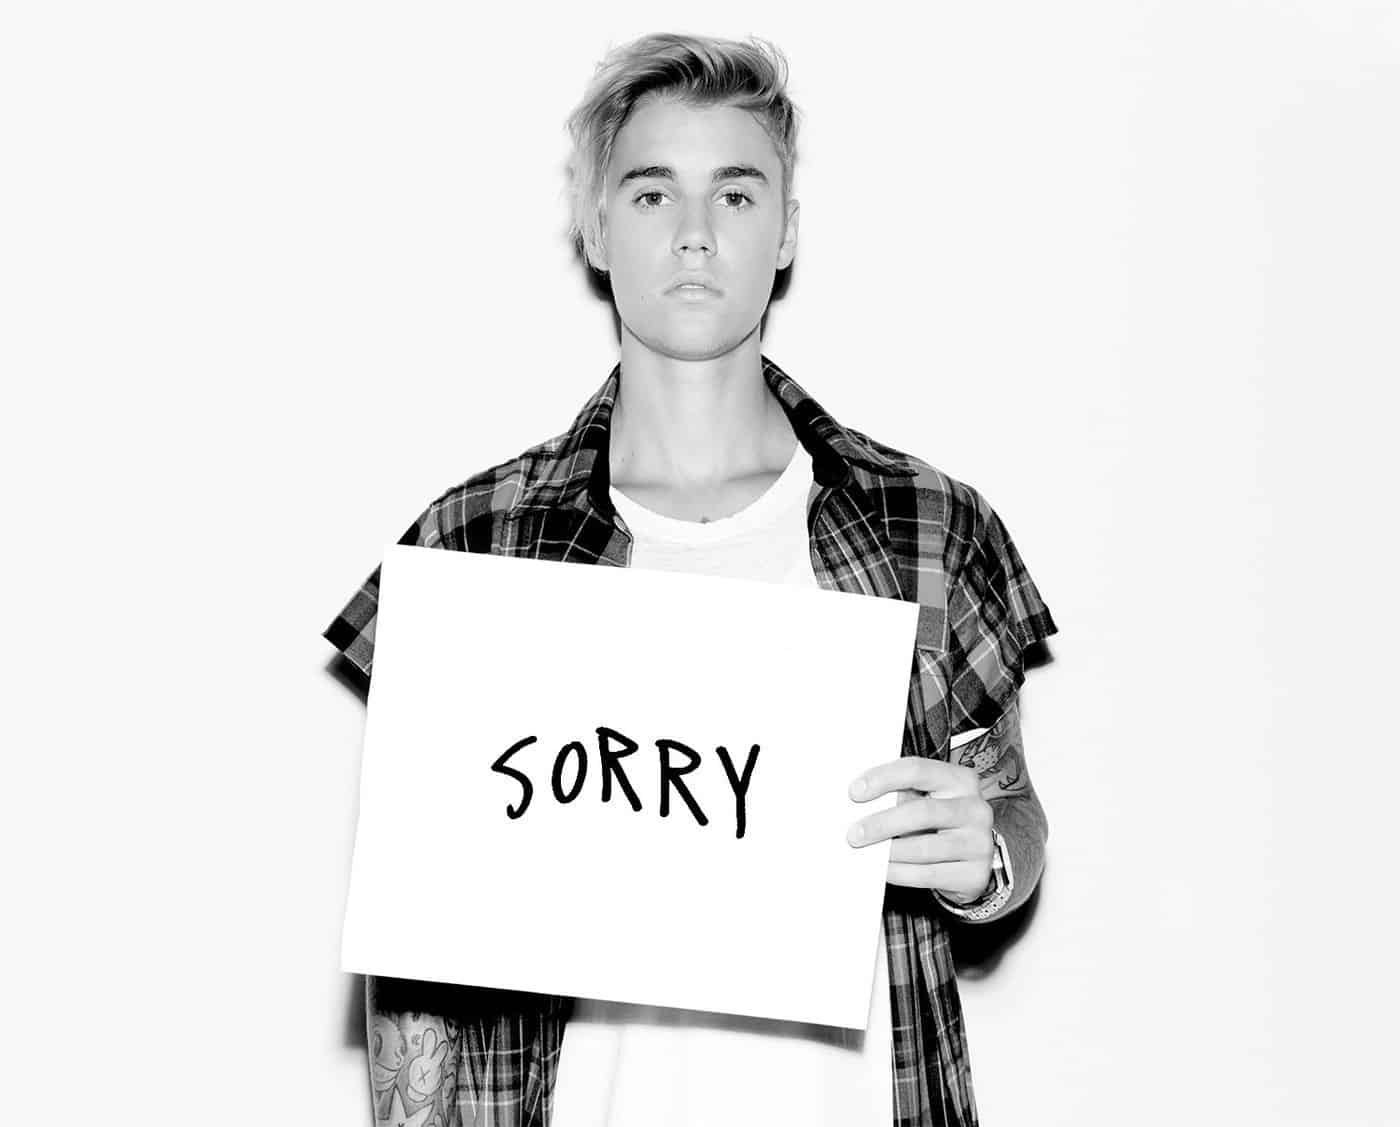 Did Justin Bieber steal the song Sorry from someone else?